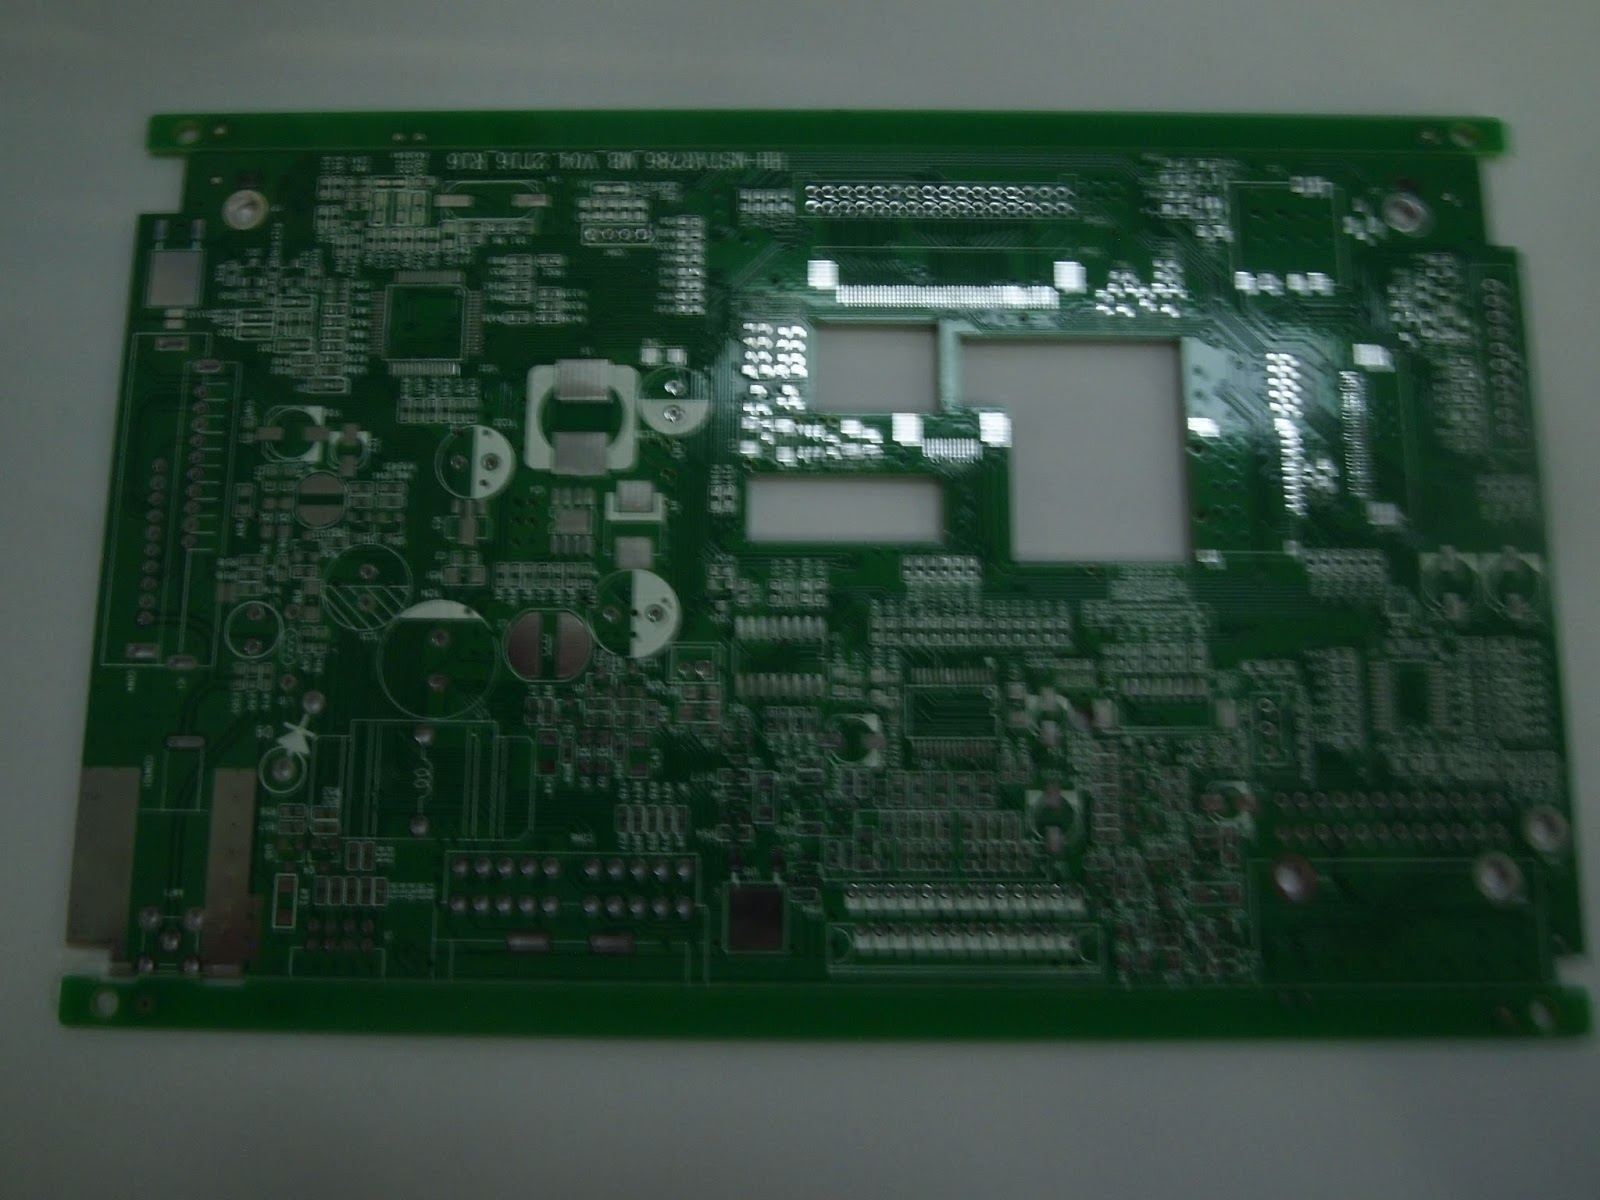 Dtpcb Hk Pcb Showcase 6 Layer Printed Circuit Boards Manufacturer In Board Maker For Micro Camera Buy Products Dtpcbcn Akenzhangdtpcbcn